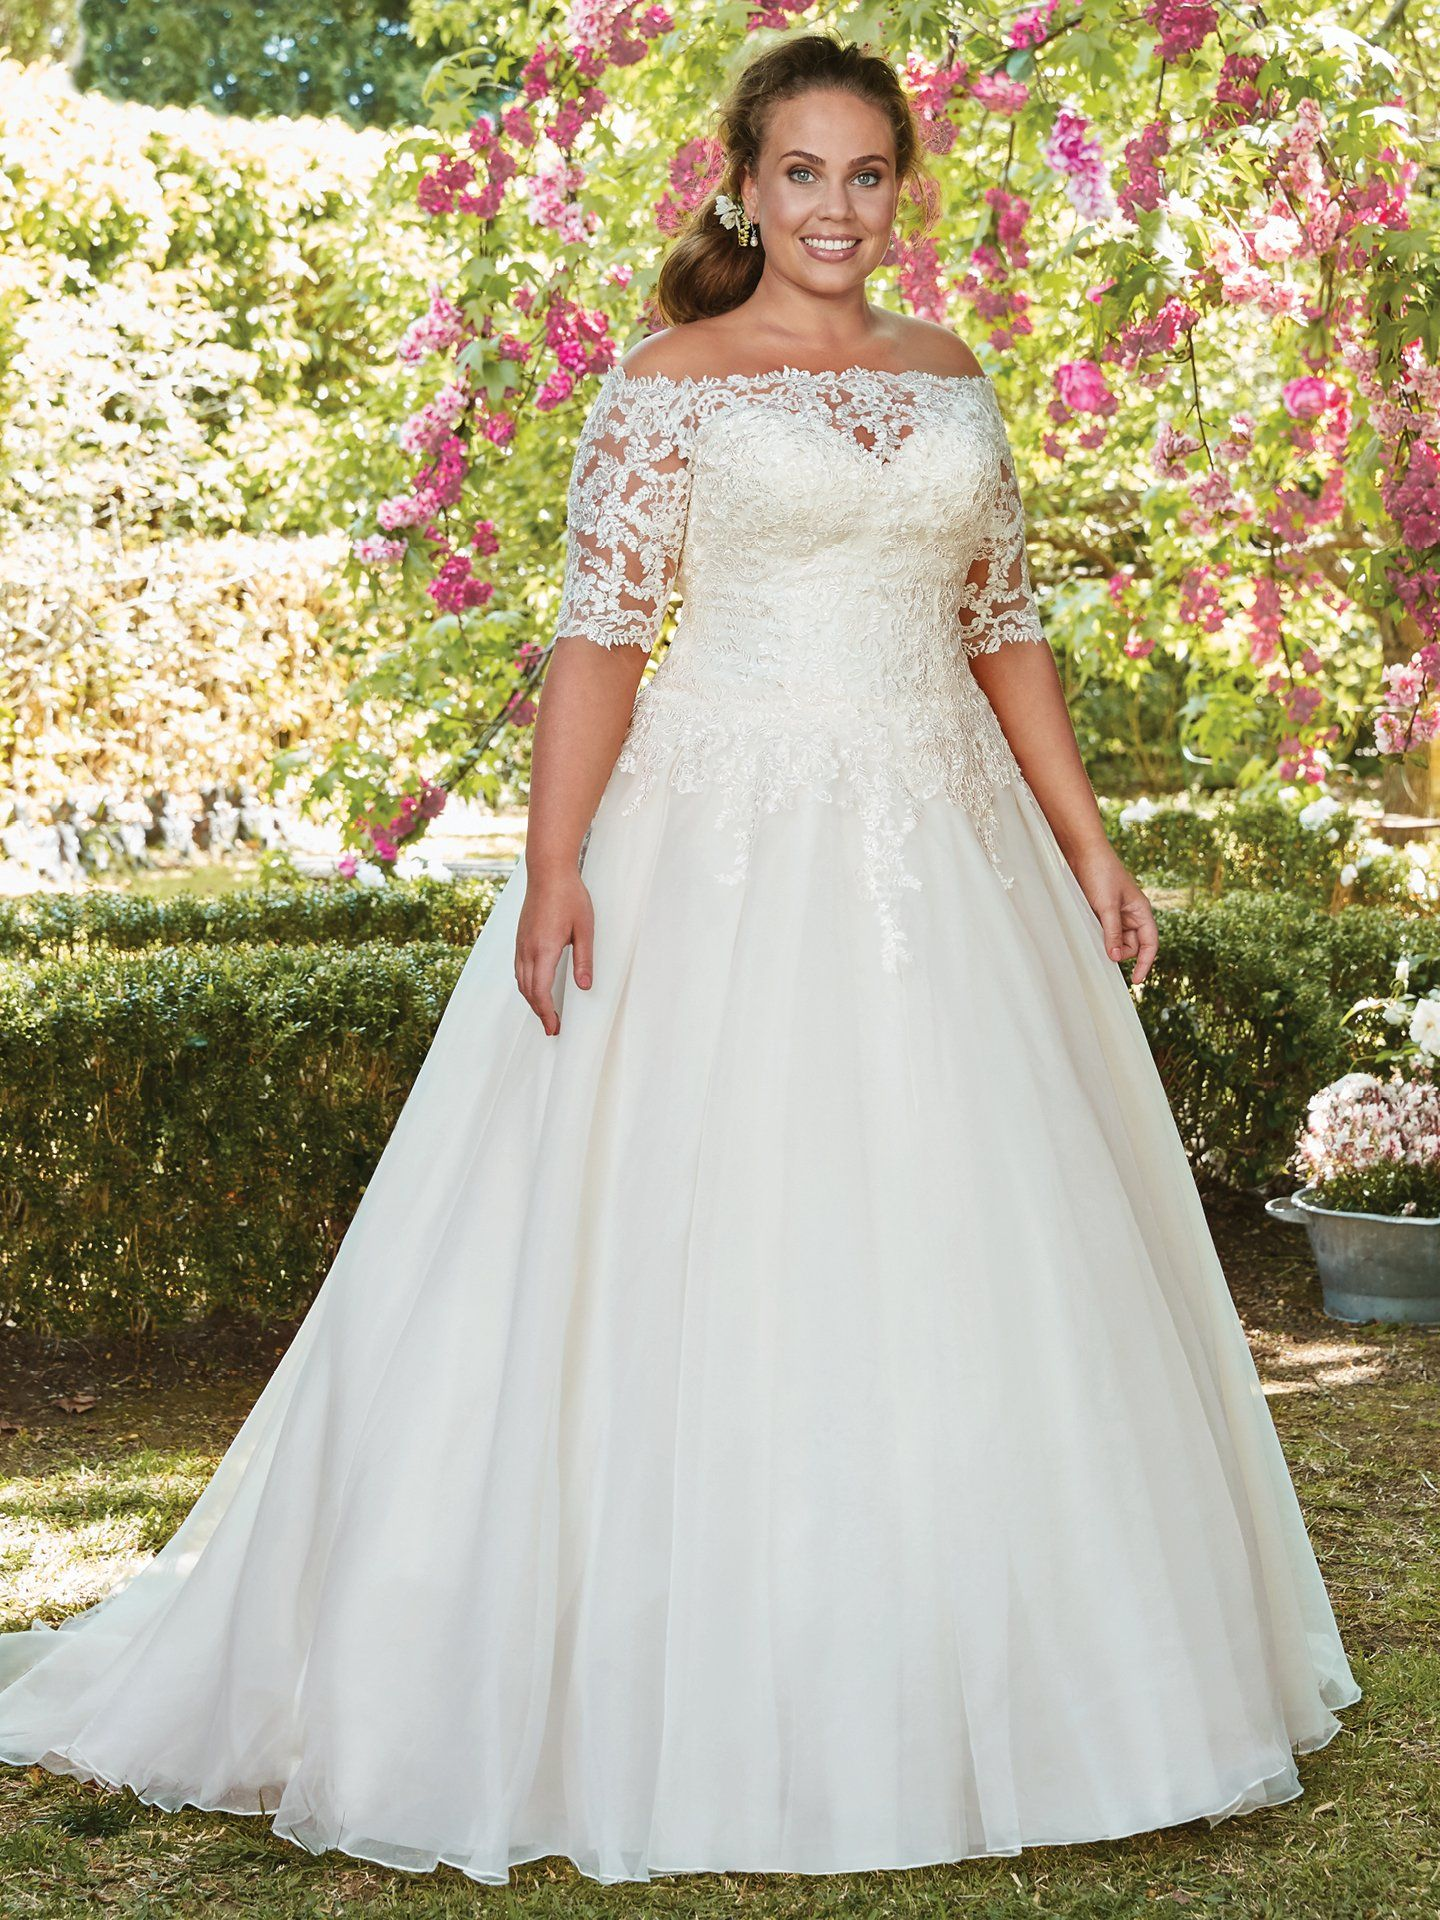 Darlene By Rebecca Ingram Wedding Dresses And Accessories Plus Size Wedding Gowns Ball Gowns Wedding Wedding Dresses [ 1920 x 1440 Pixel ]